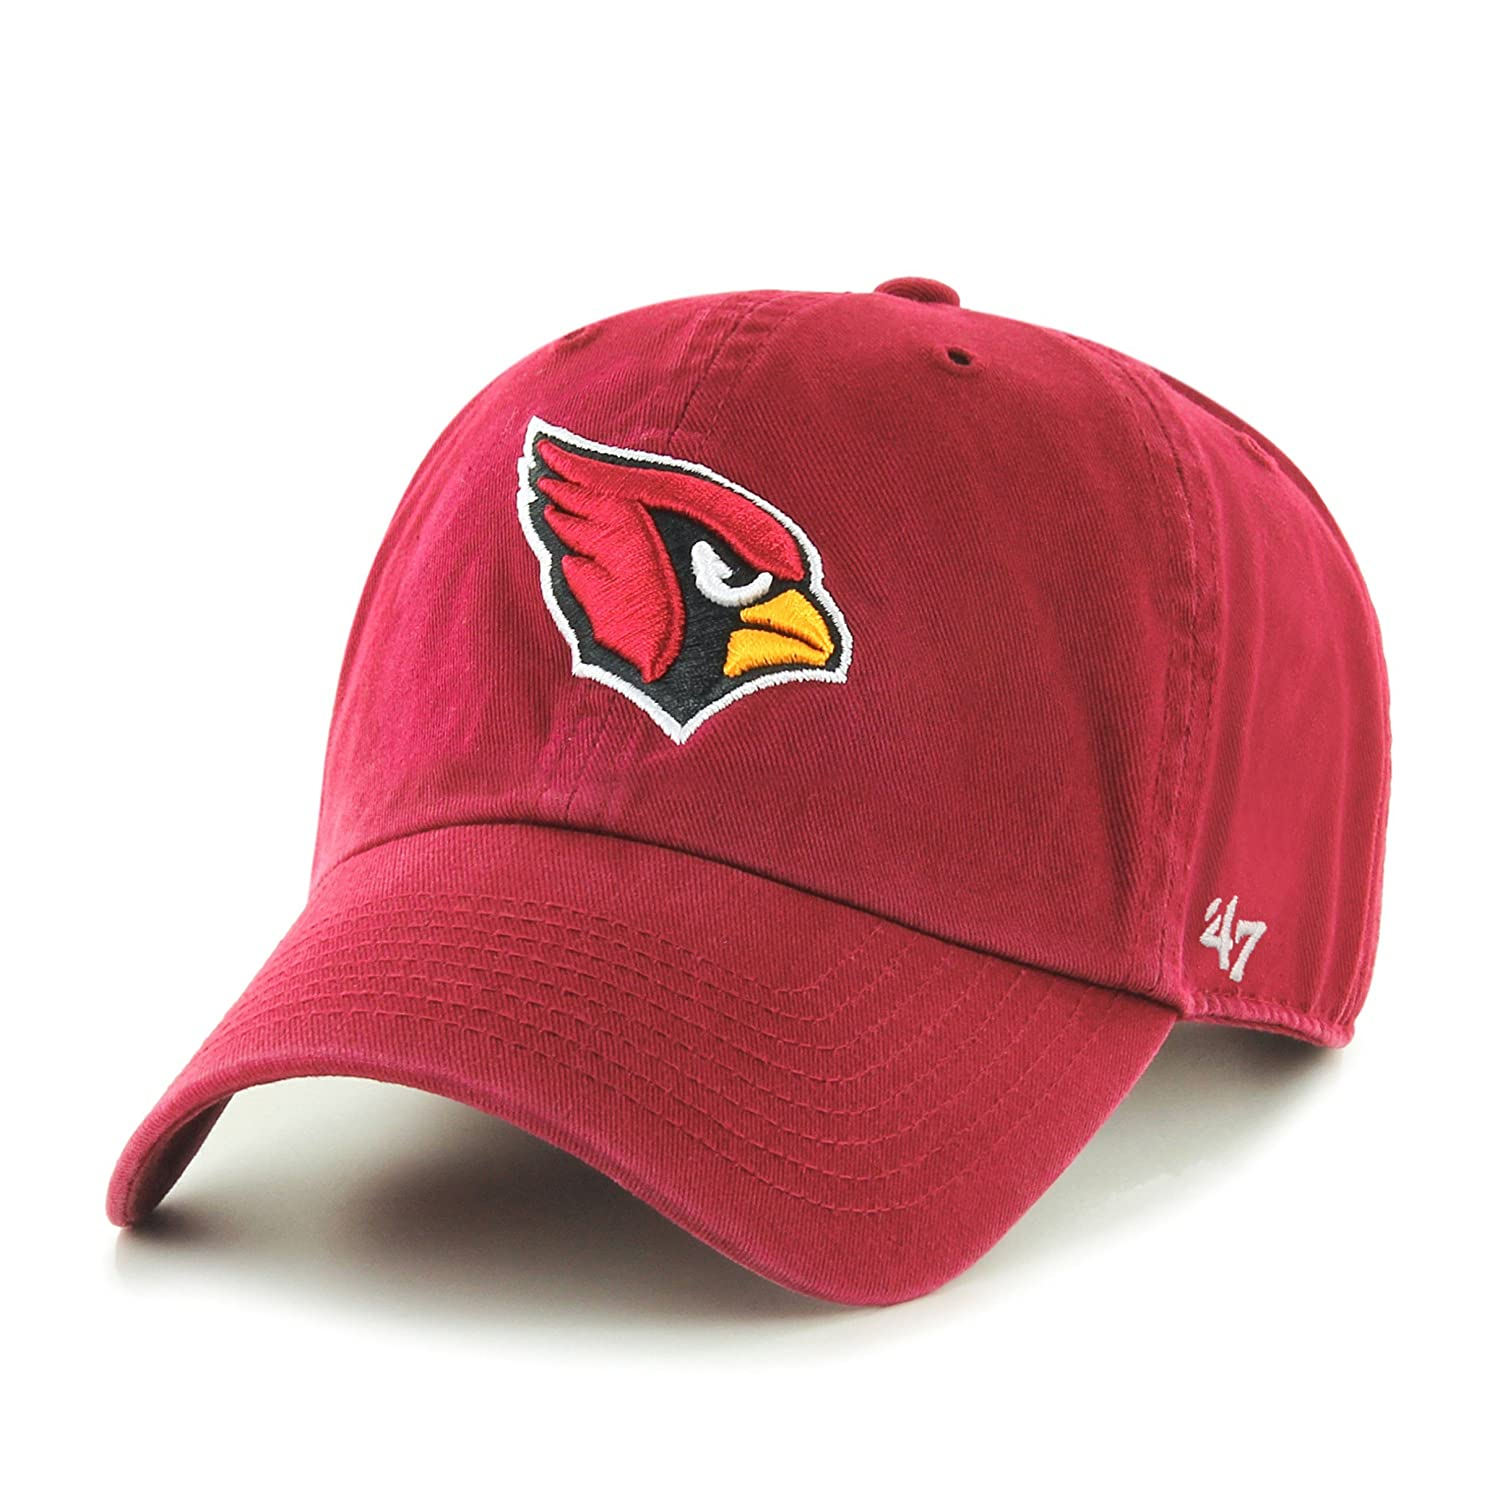 3aec030d6e4109 Amazon.com : NFL Arizona Cardinals Clean Up Adjustable Hat, Dark Red, One  Size Fits All Fits All : Baseball Caps : Clothing